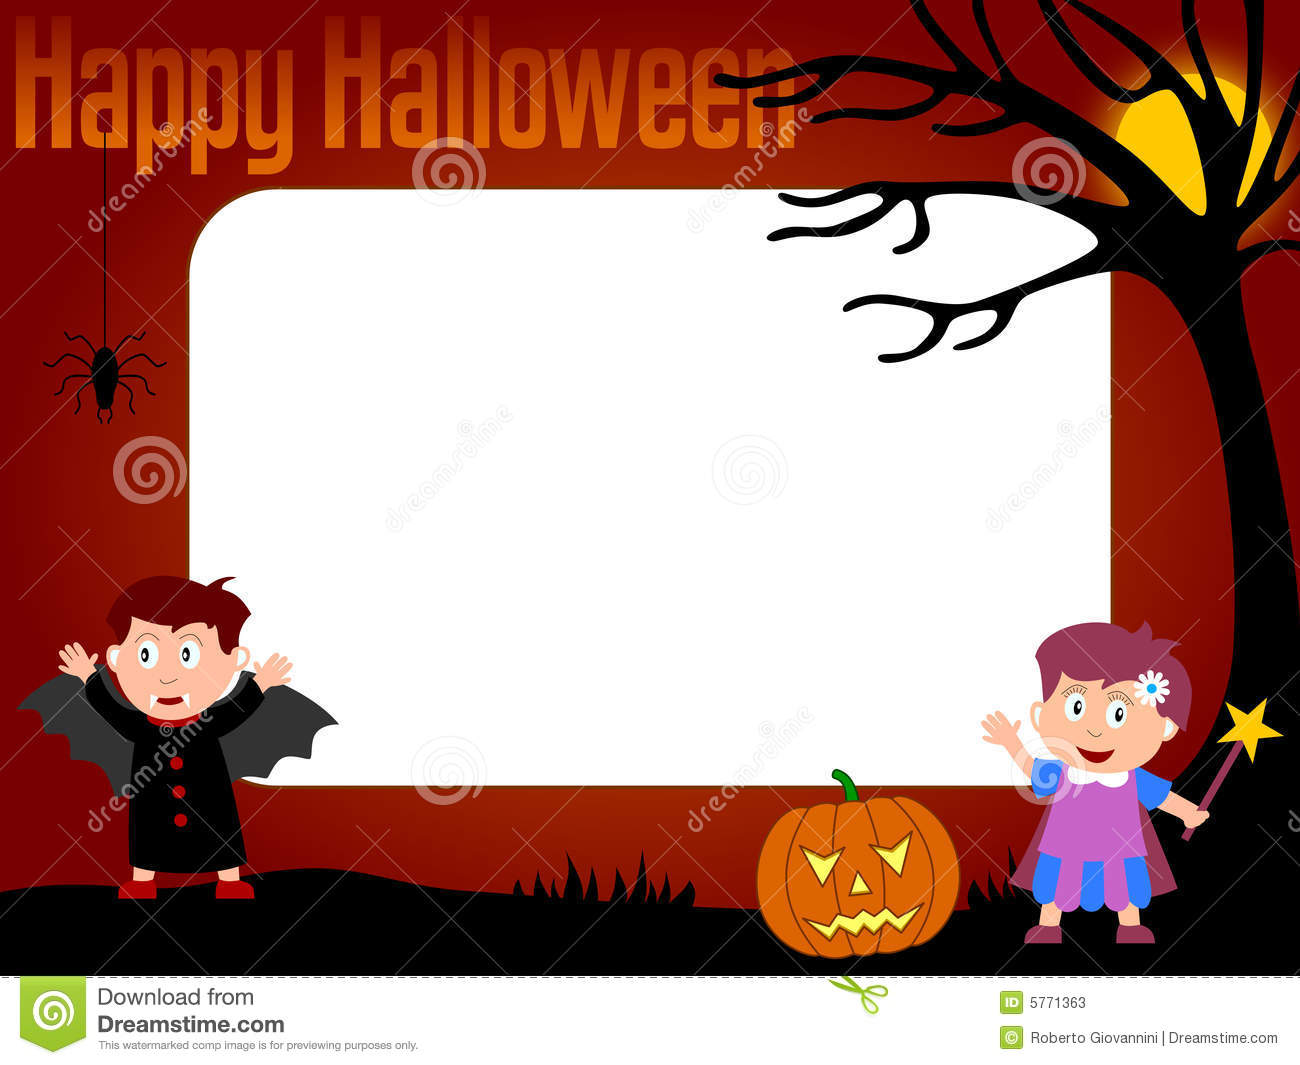 Photo frame halloween 3 stock illustration illustration of photo frame halloween 3 jeuxipadfo Choice Image